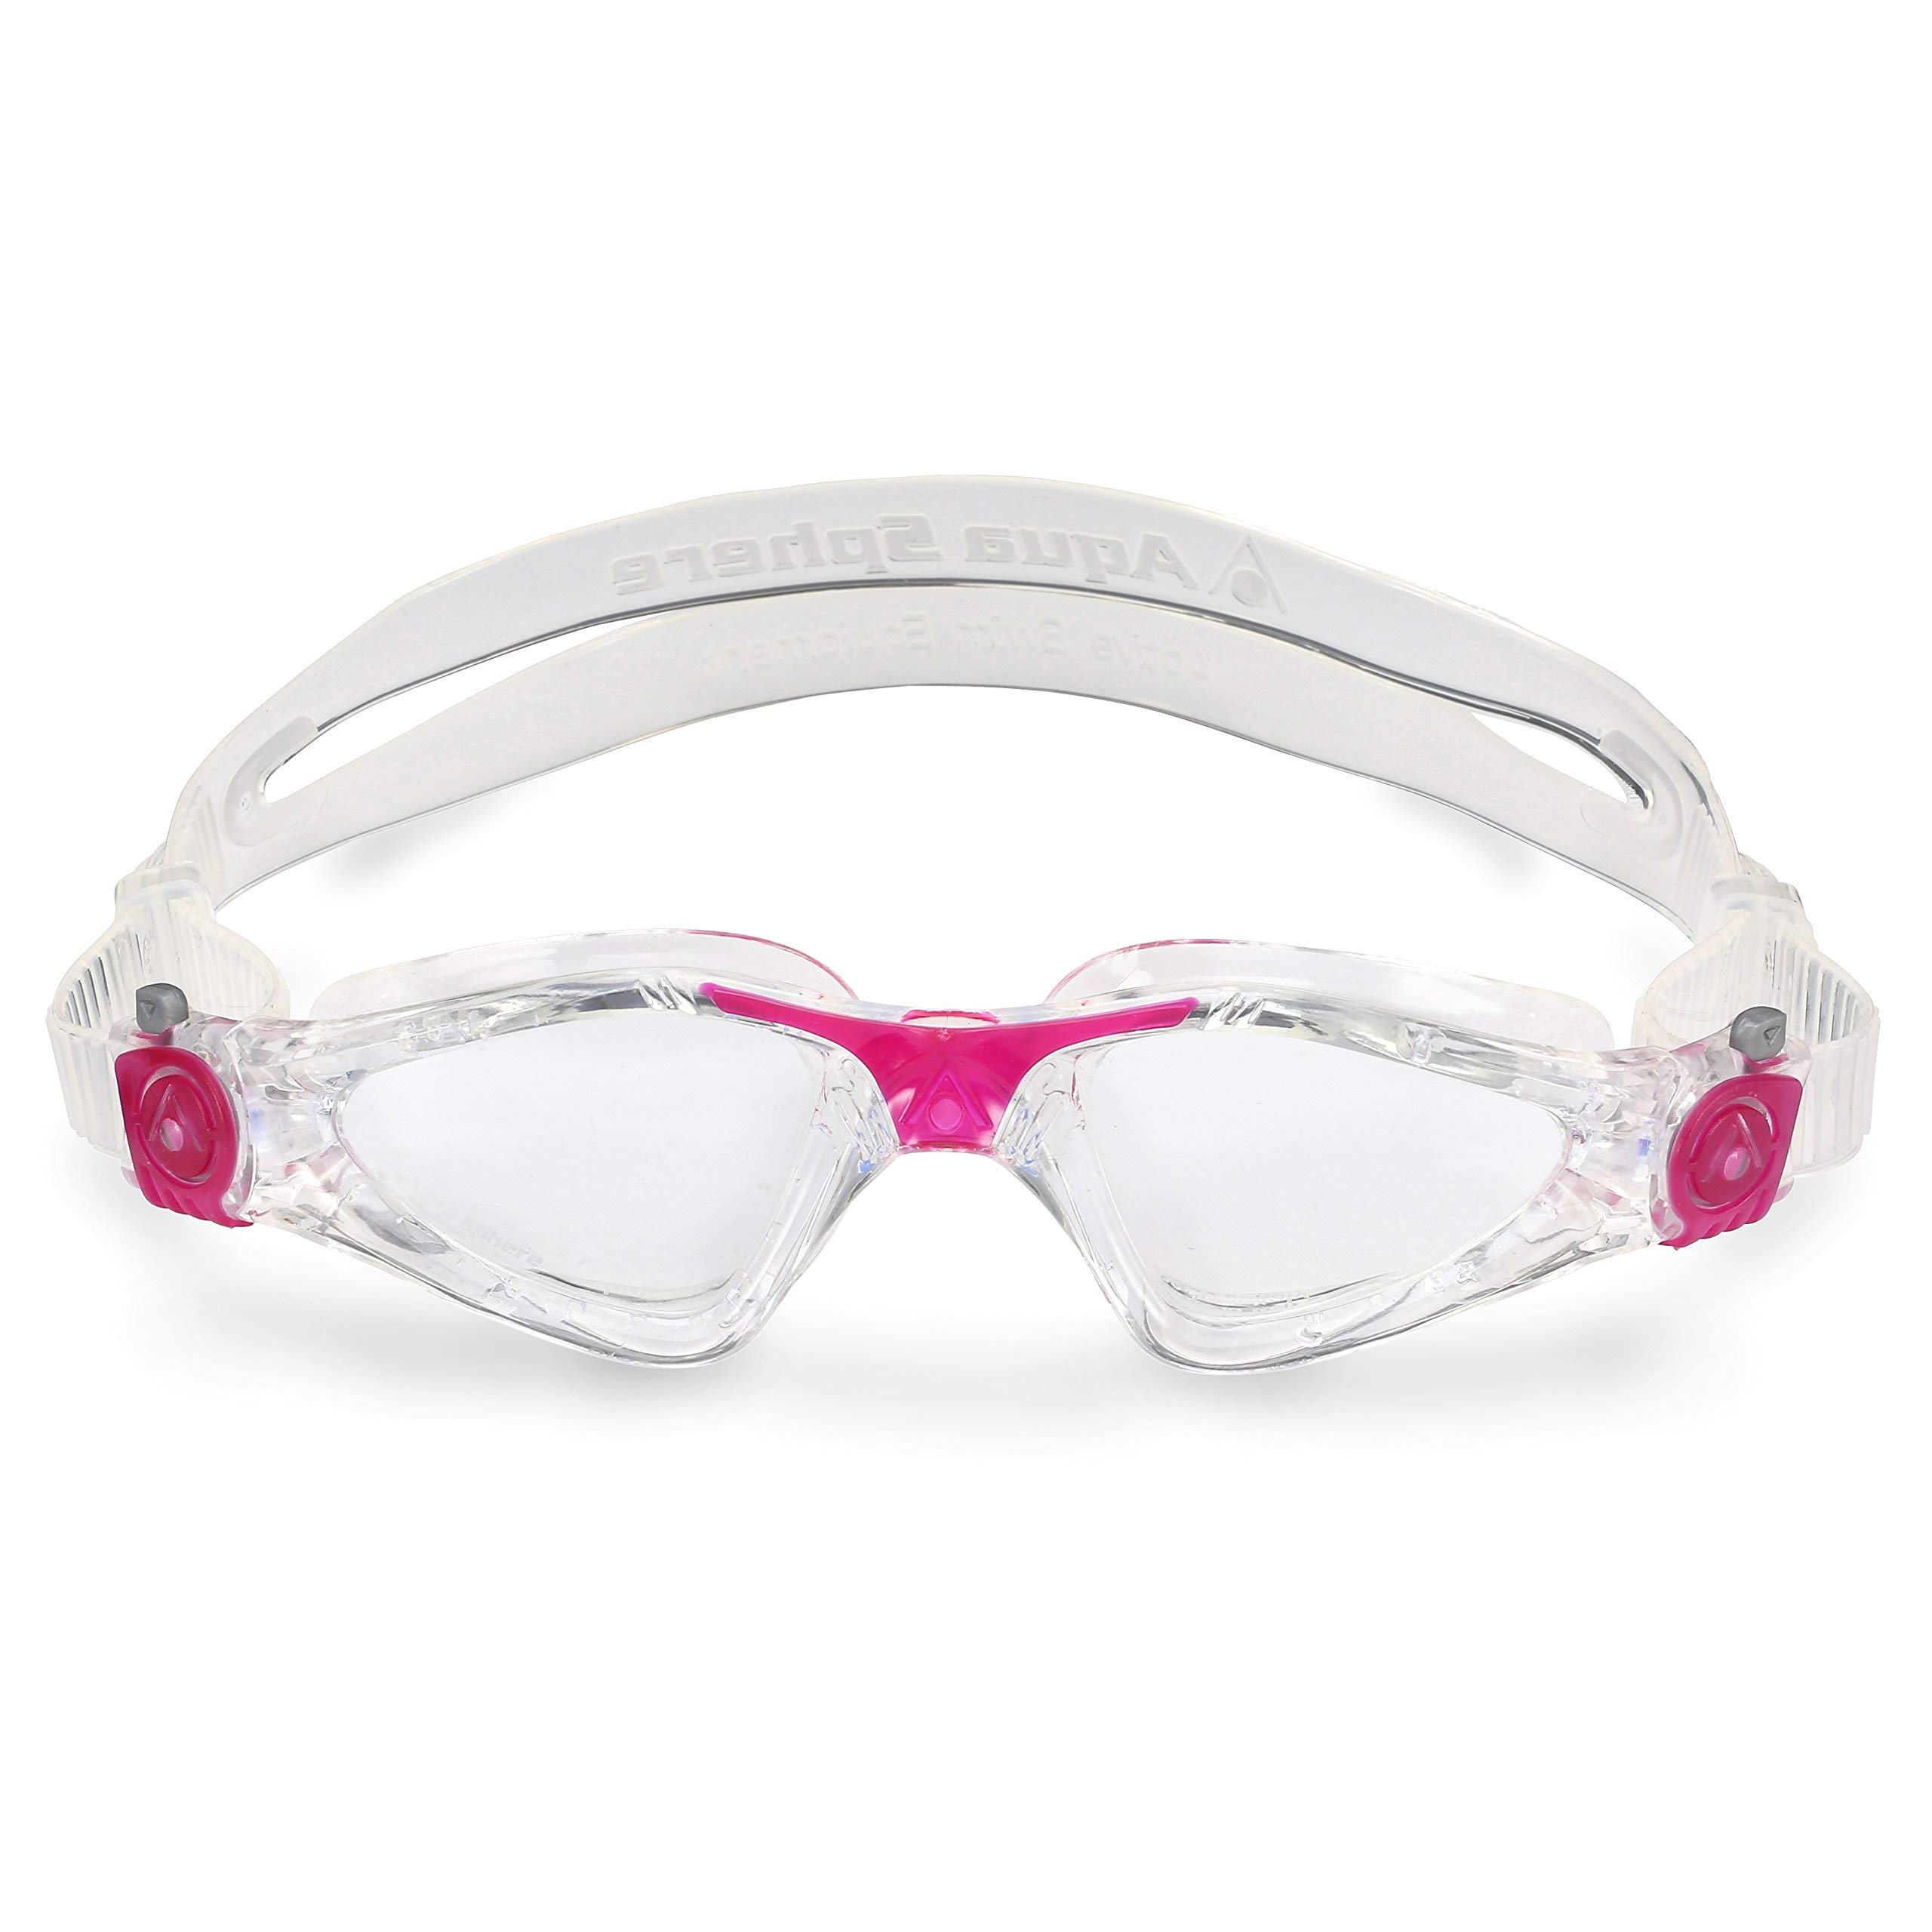 Aqua Sphere Kayenne Ladies with Clear Lens (Trasp/Fuxia) Swim Goggles for Women by Aqua Sphere (Image #2)